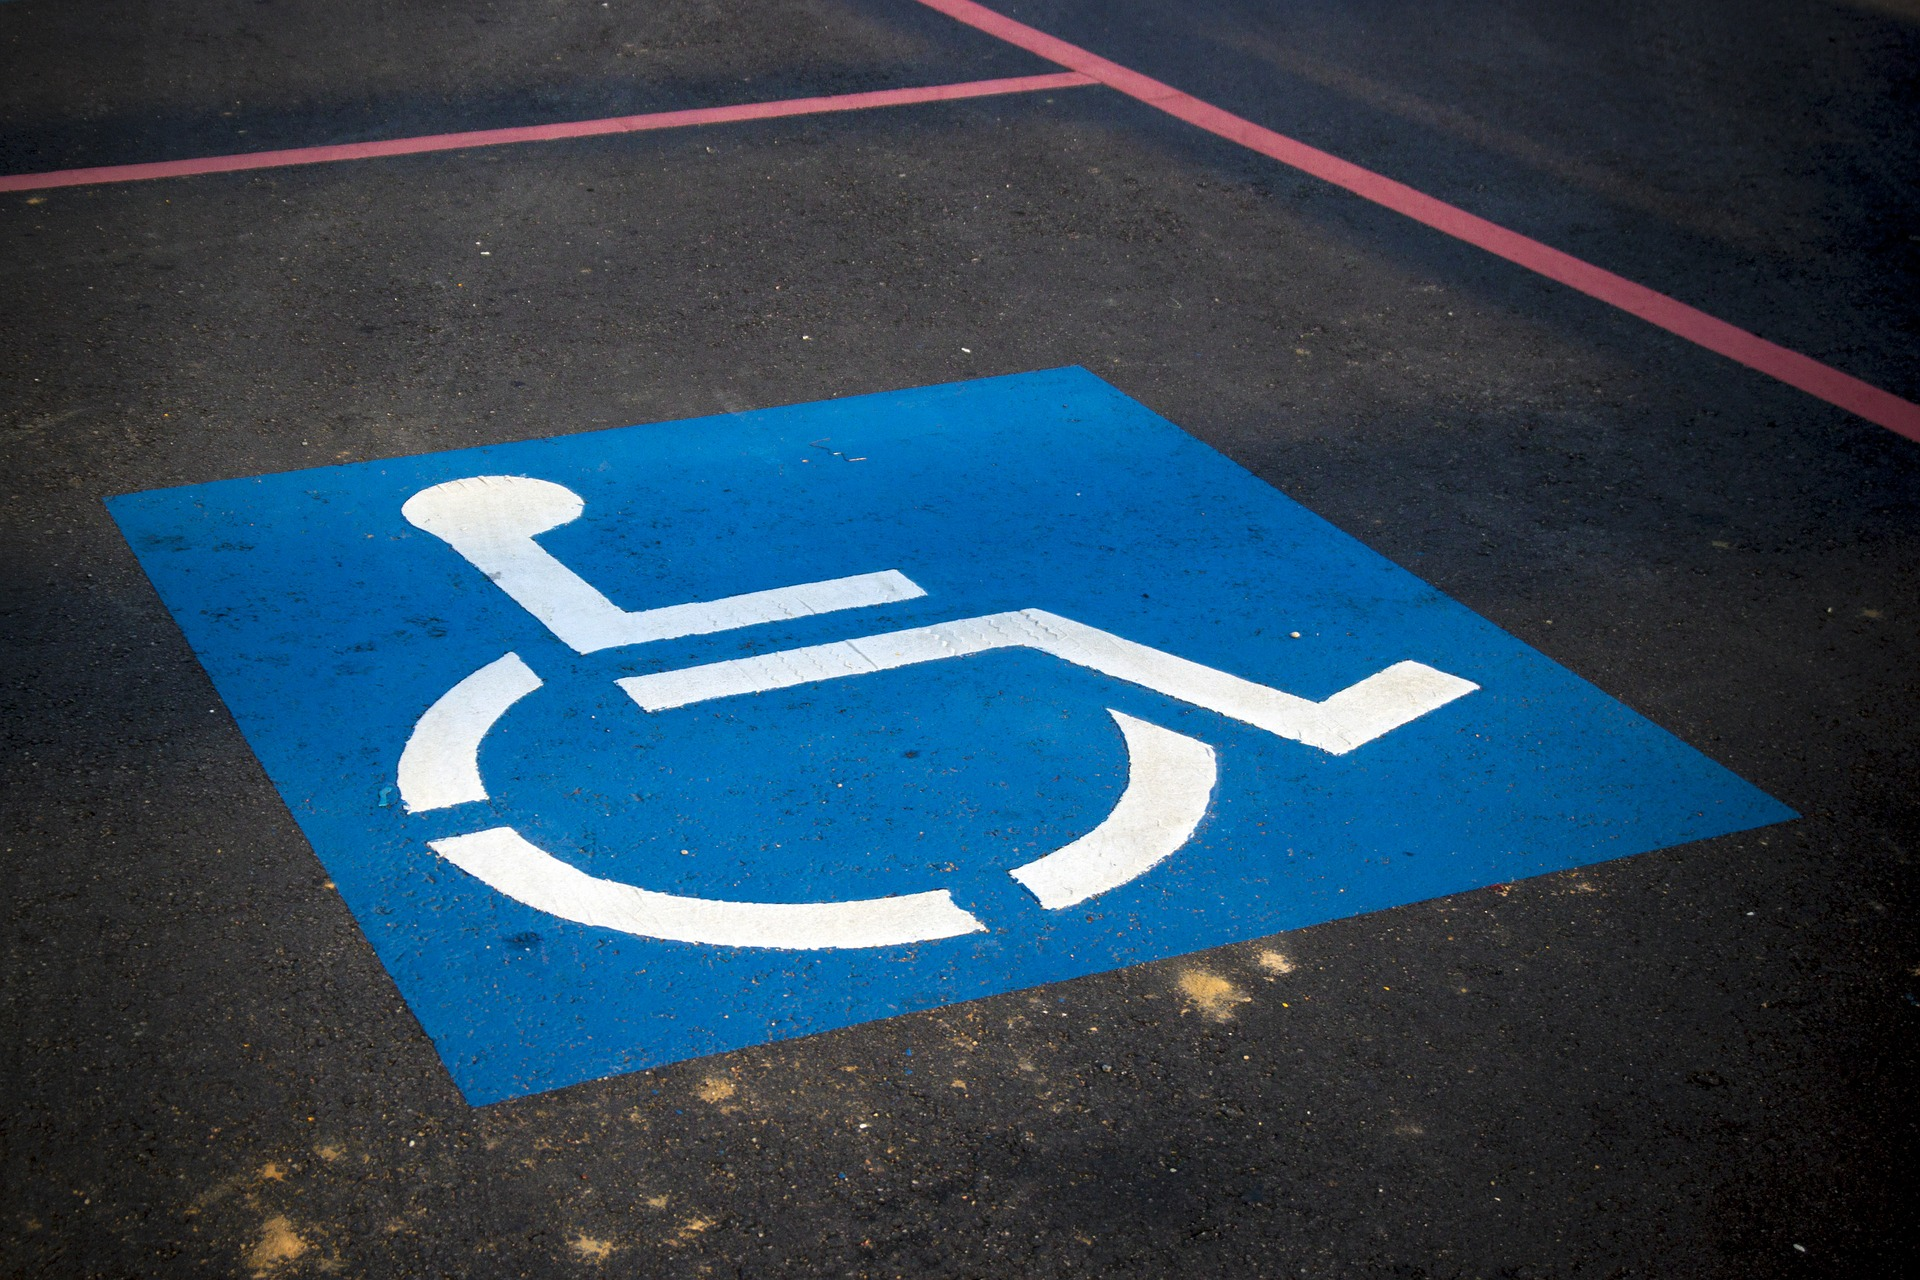 Close up of a handicapped parking space incorporating the International Symbol of Access